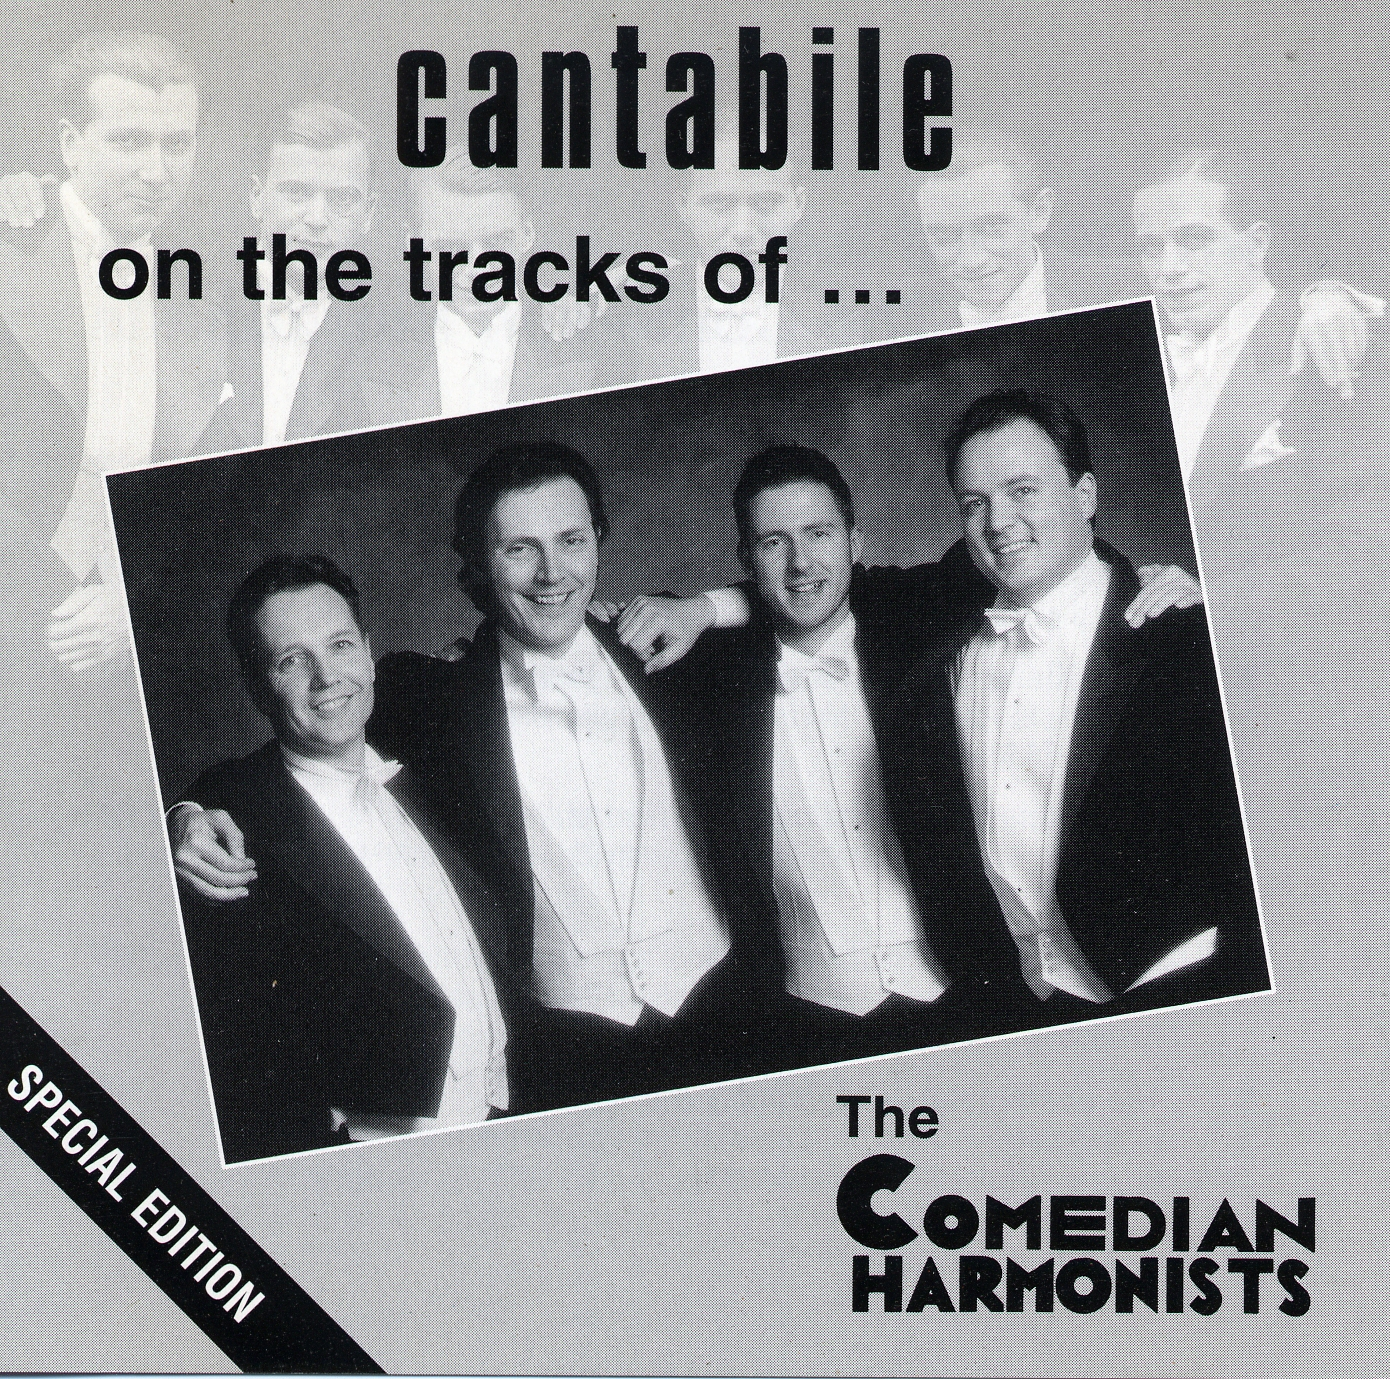 Cantabile - on the tracks of The Comedian Harmonists